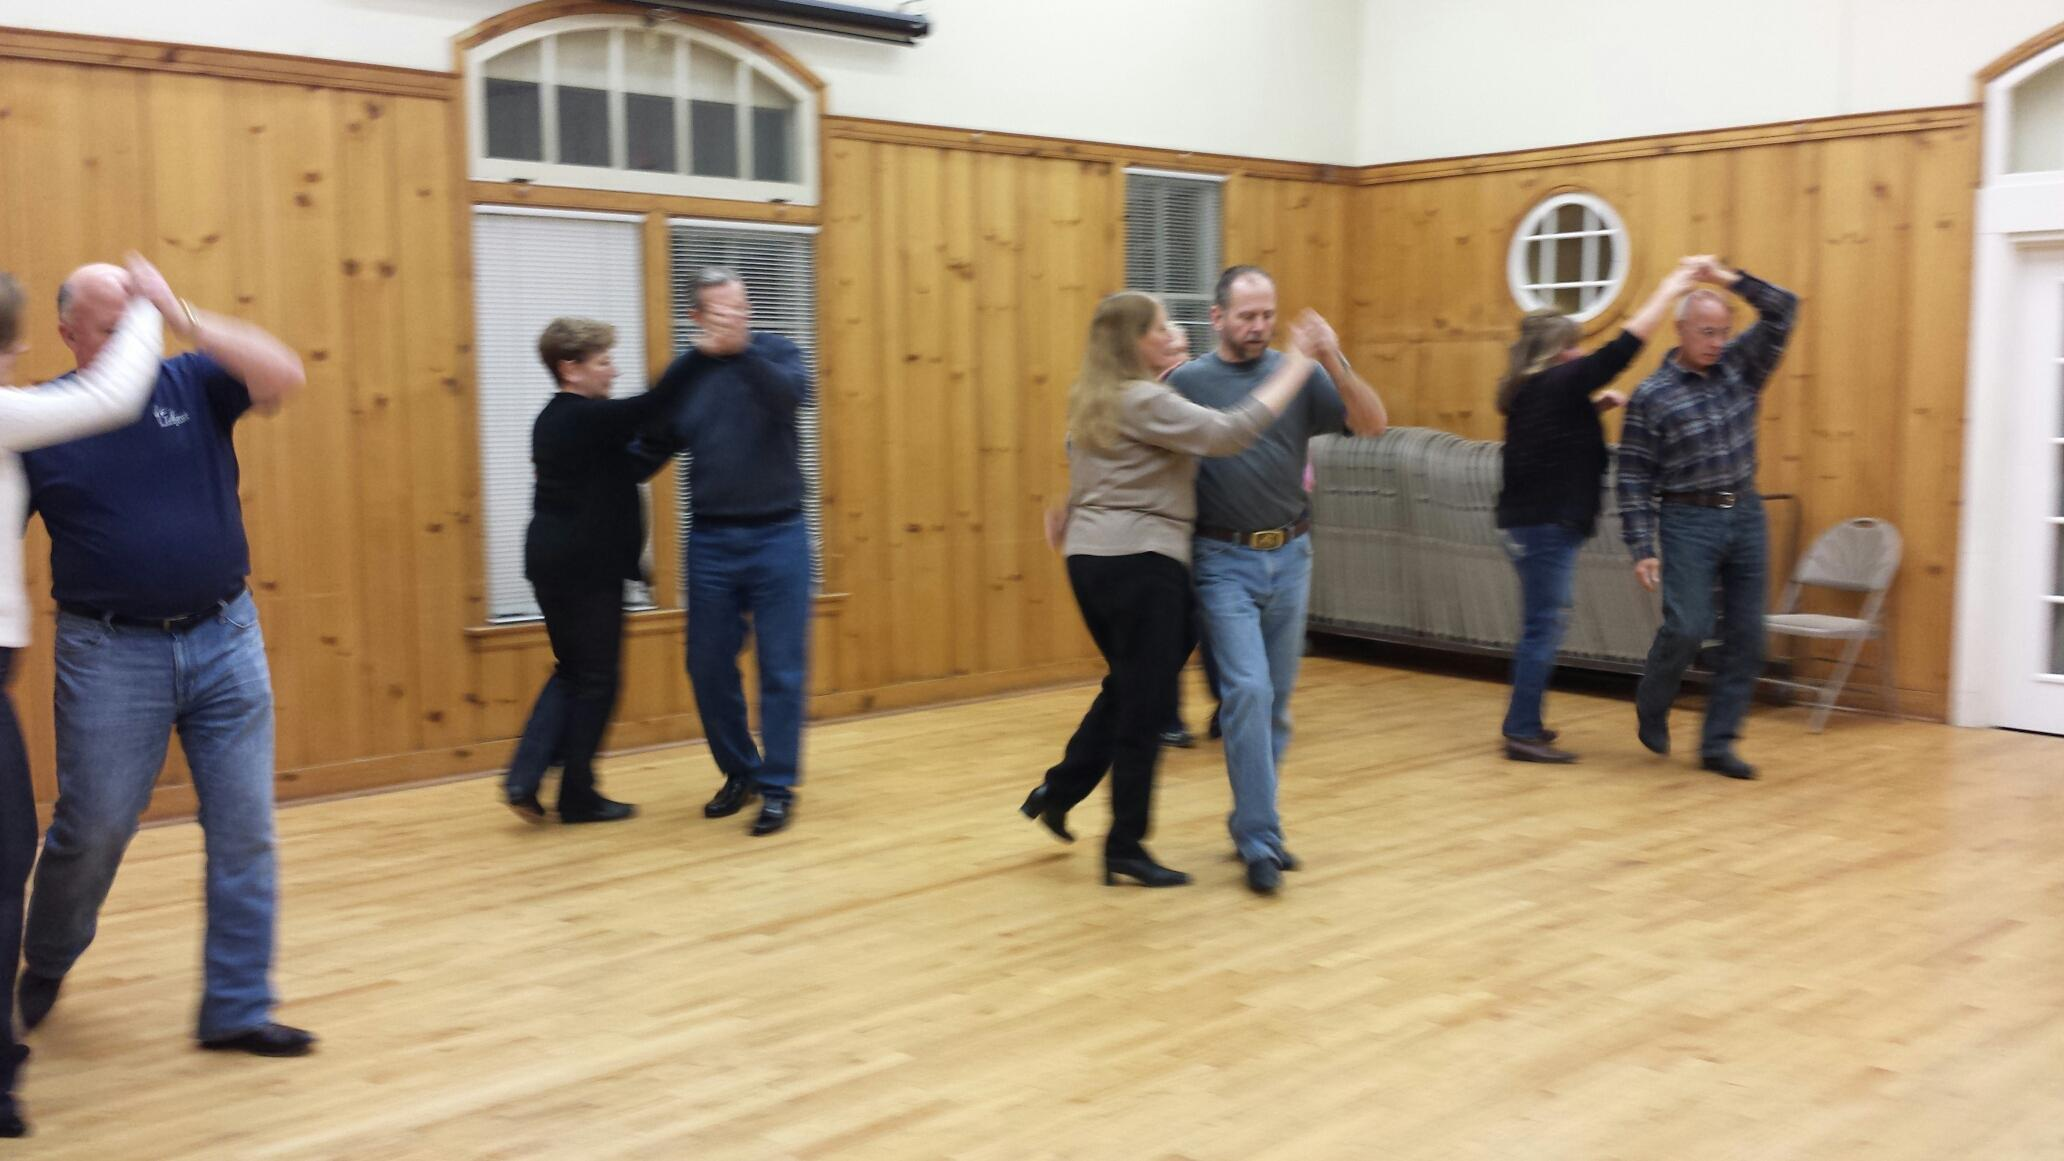 Couples5 dance instruction with a personal touch line dancing - We Cover Different Freestyle Dances In Different Classes